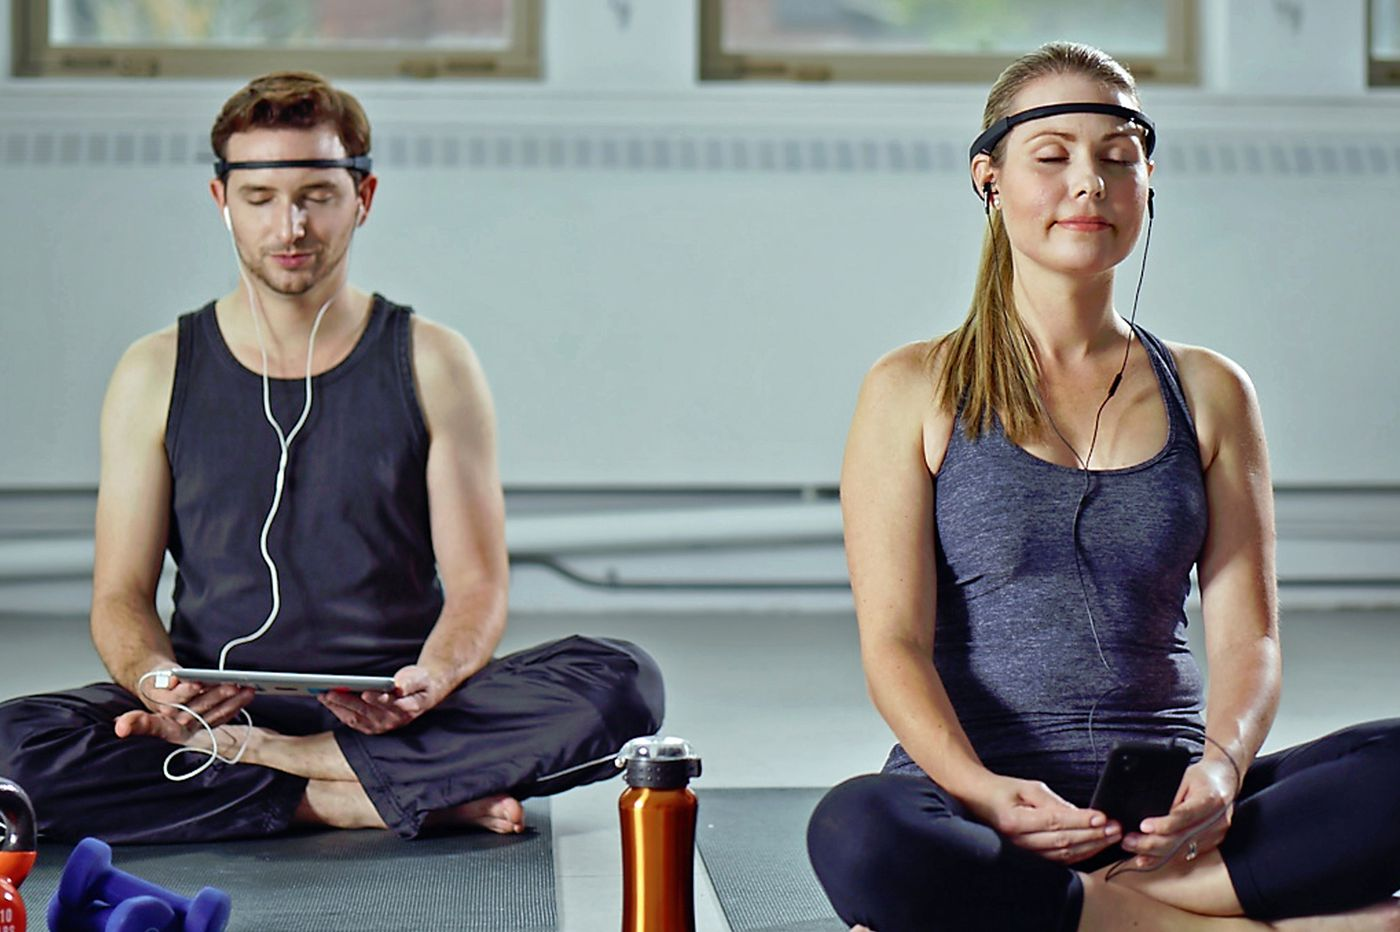 Travel Gear: Muse 2 Meditation Headband